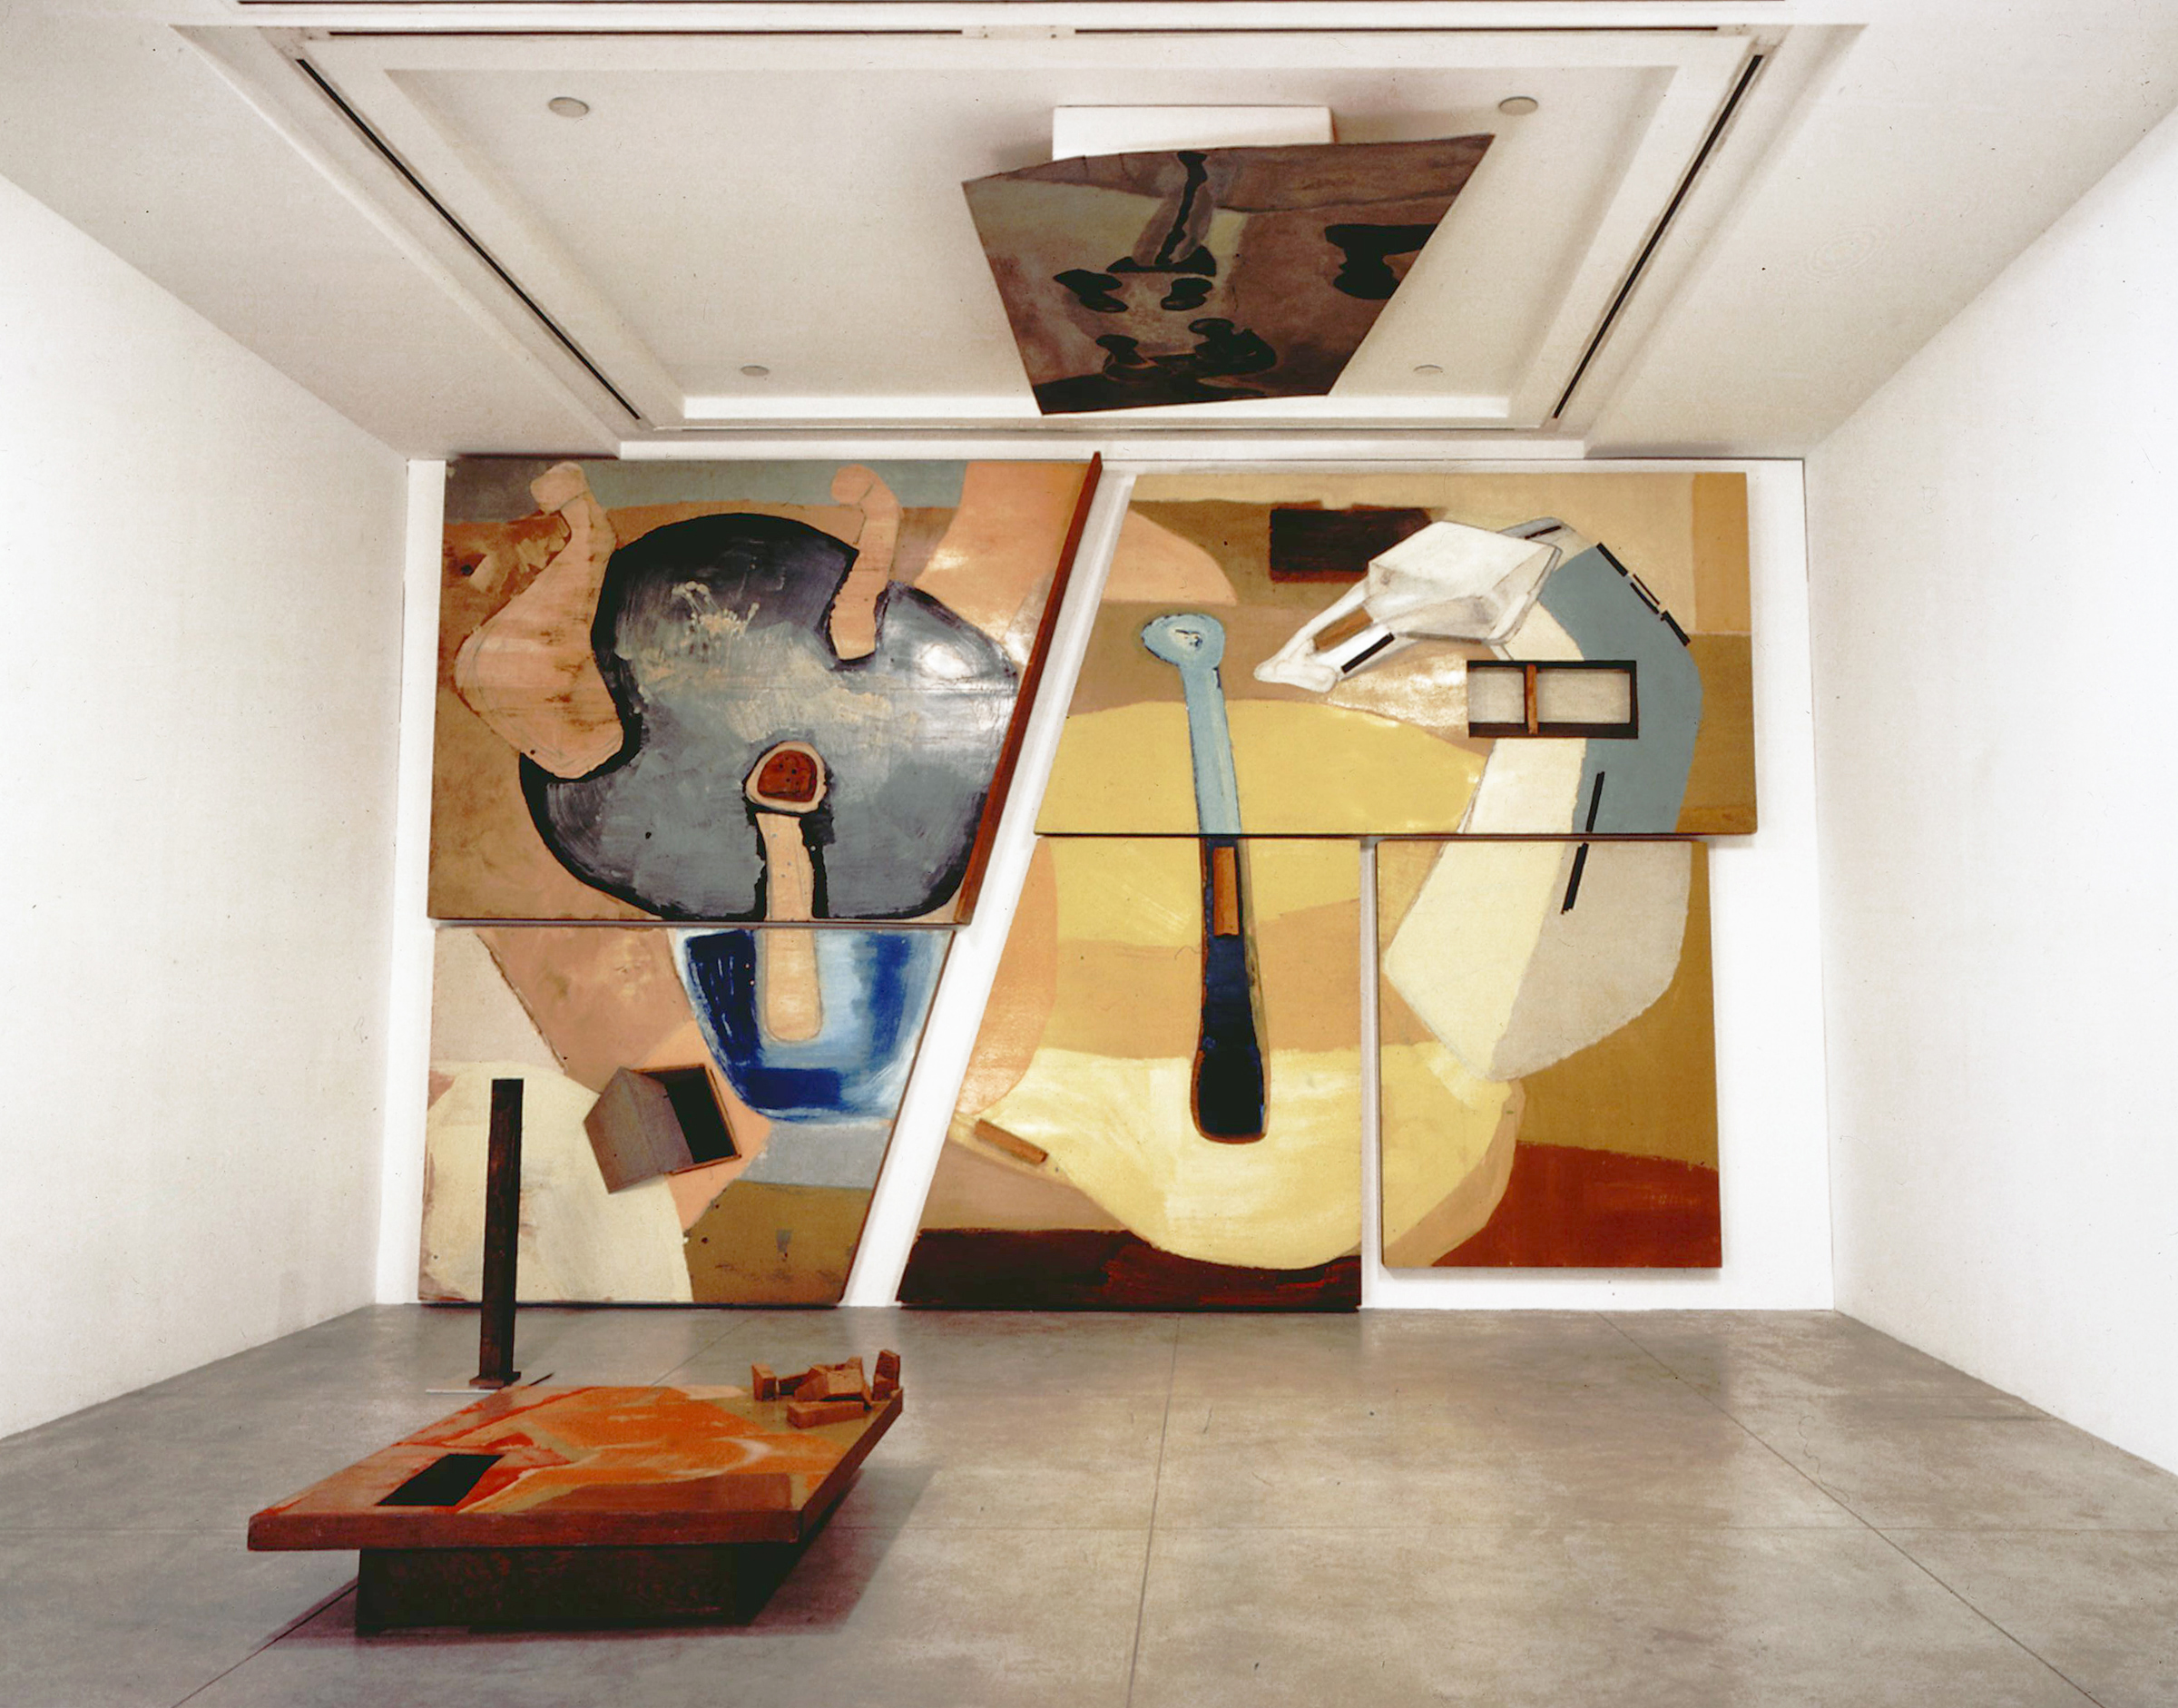 Frederick Kiesler,  Large Horse Galaxy,  1954, Mixed media installation consisting of six wall panels, one table, one floor piece and one ceiling piece. Dimensions vary. Collection of The Estate of Frederick Kiesler, New York